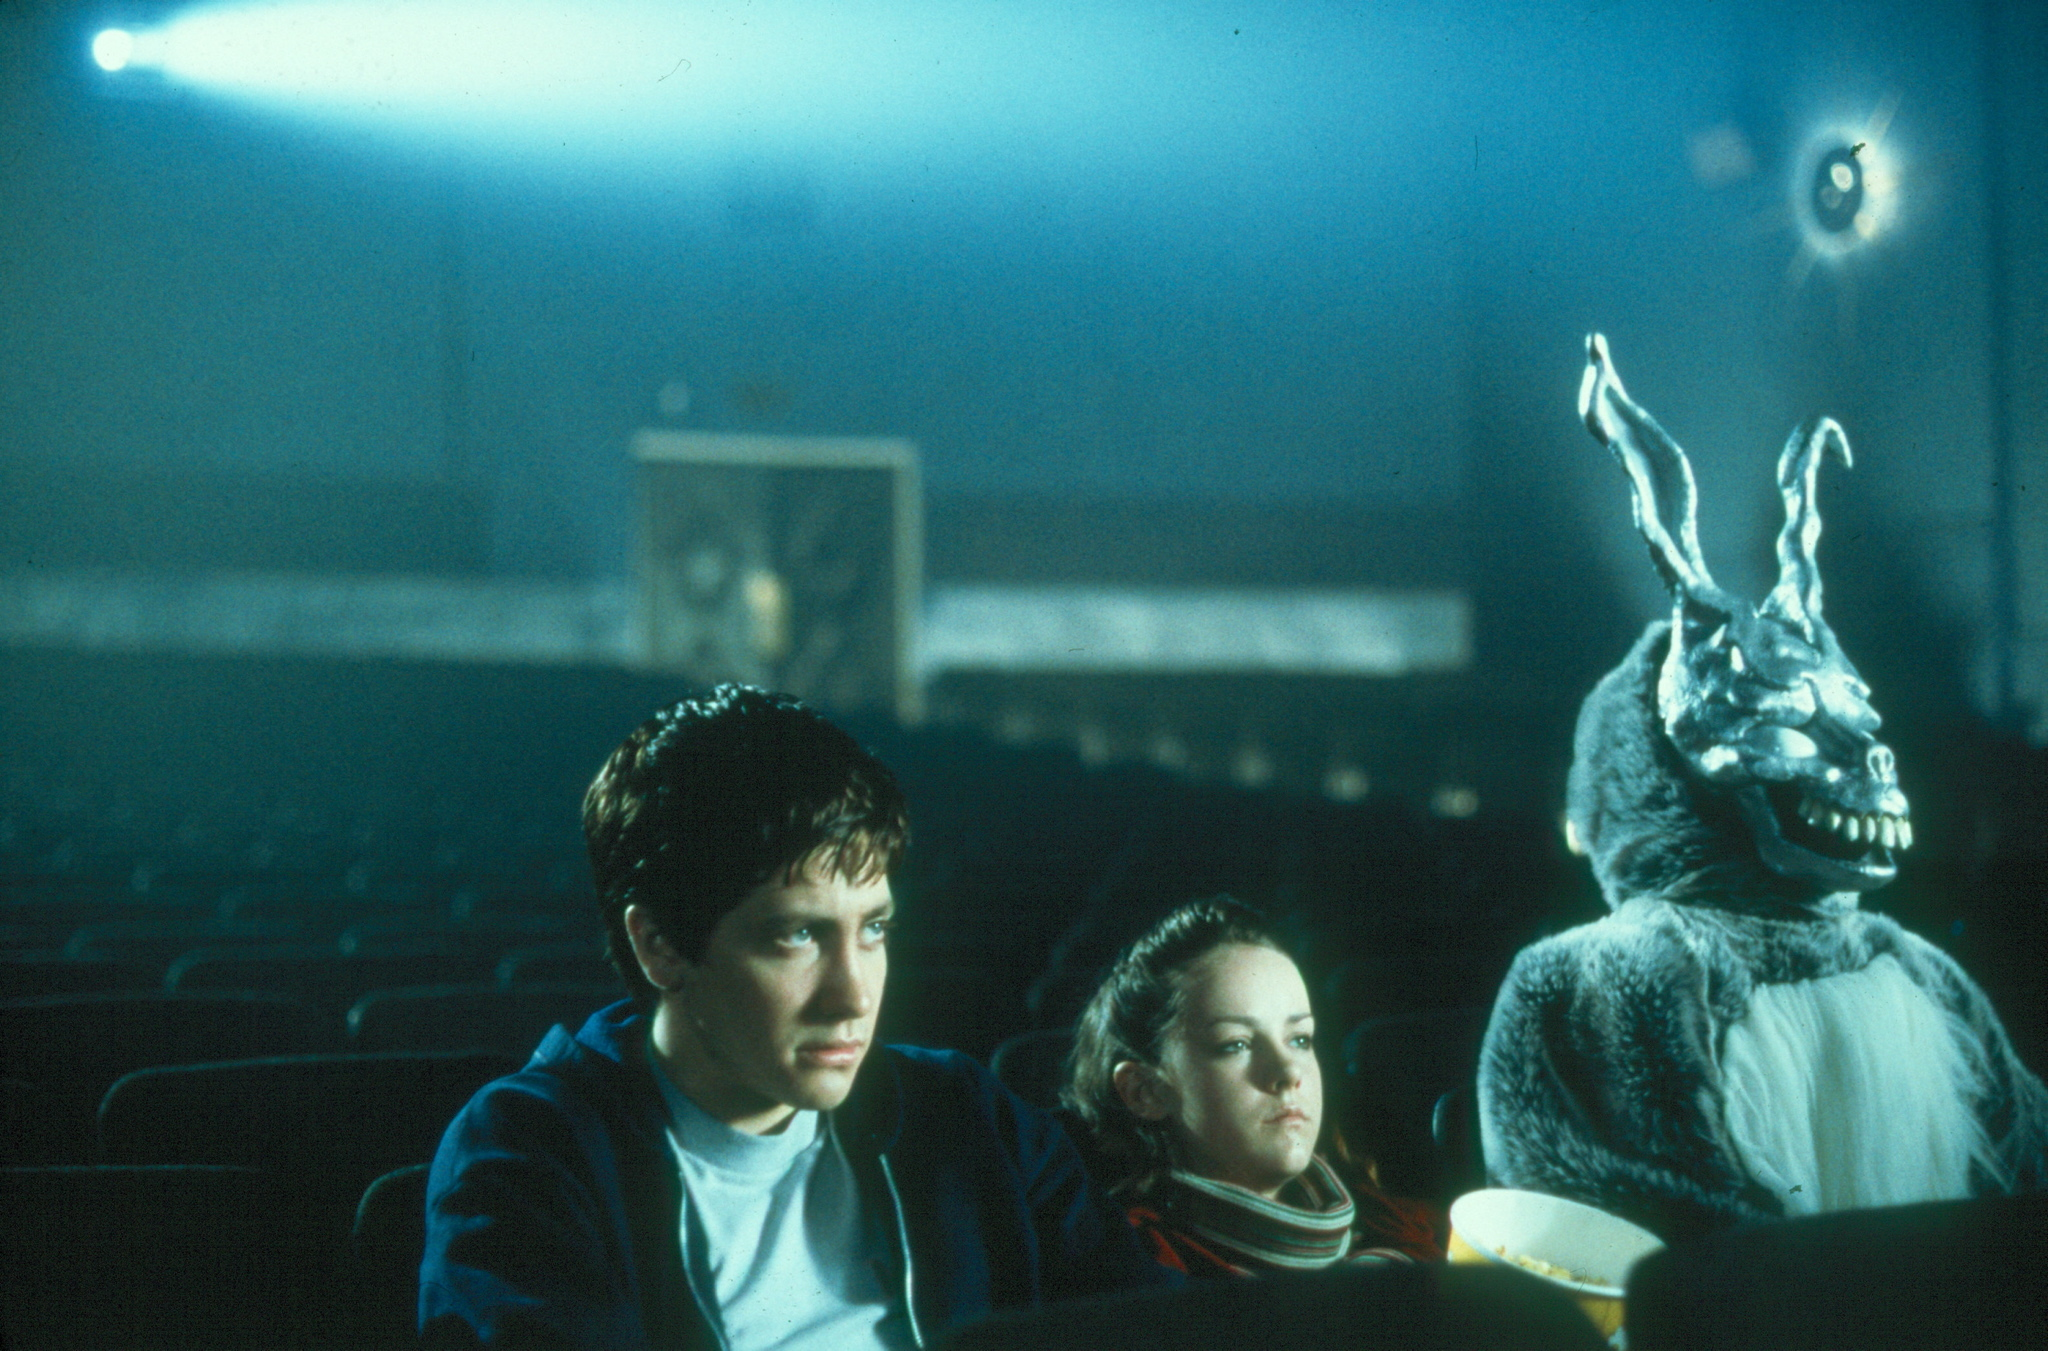 Sci-fi movie: Donnie Darko